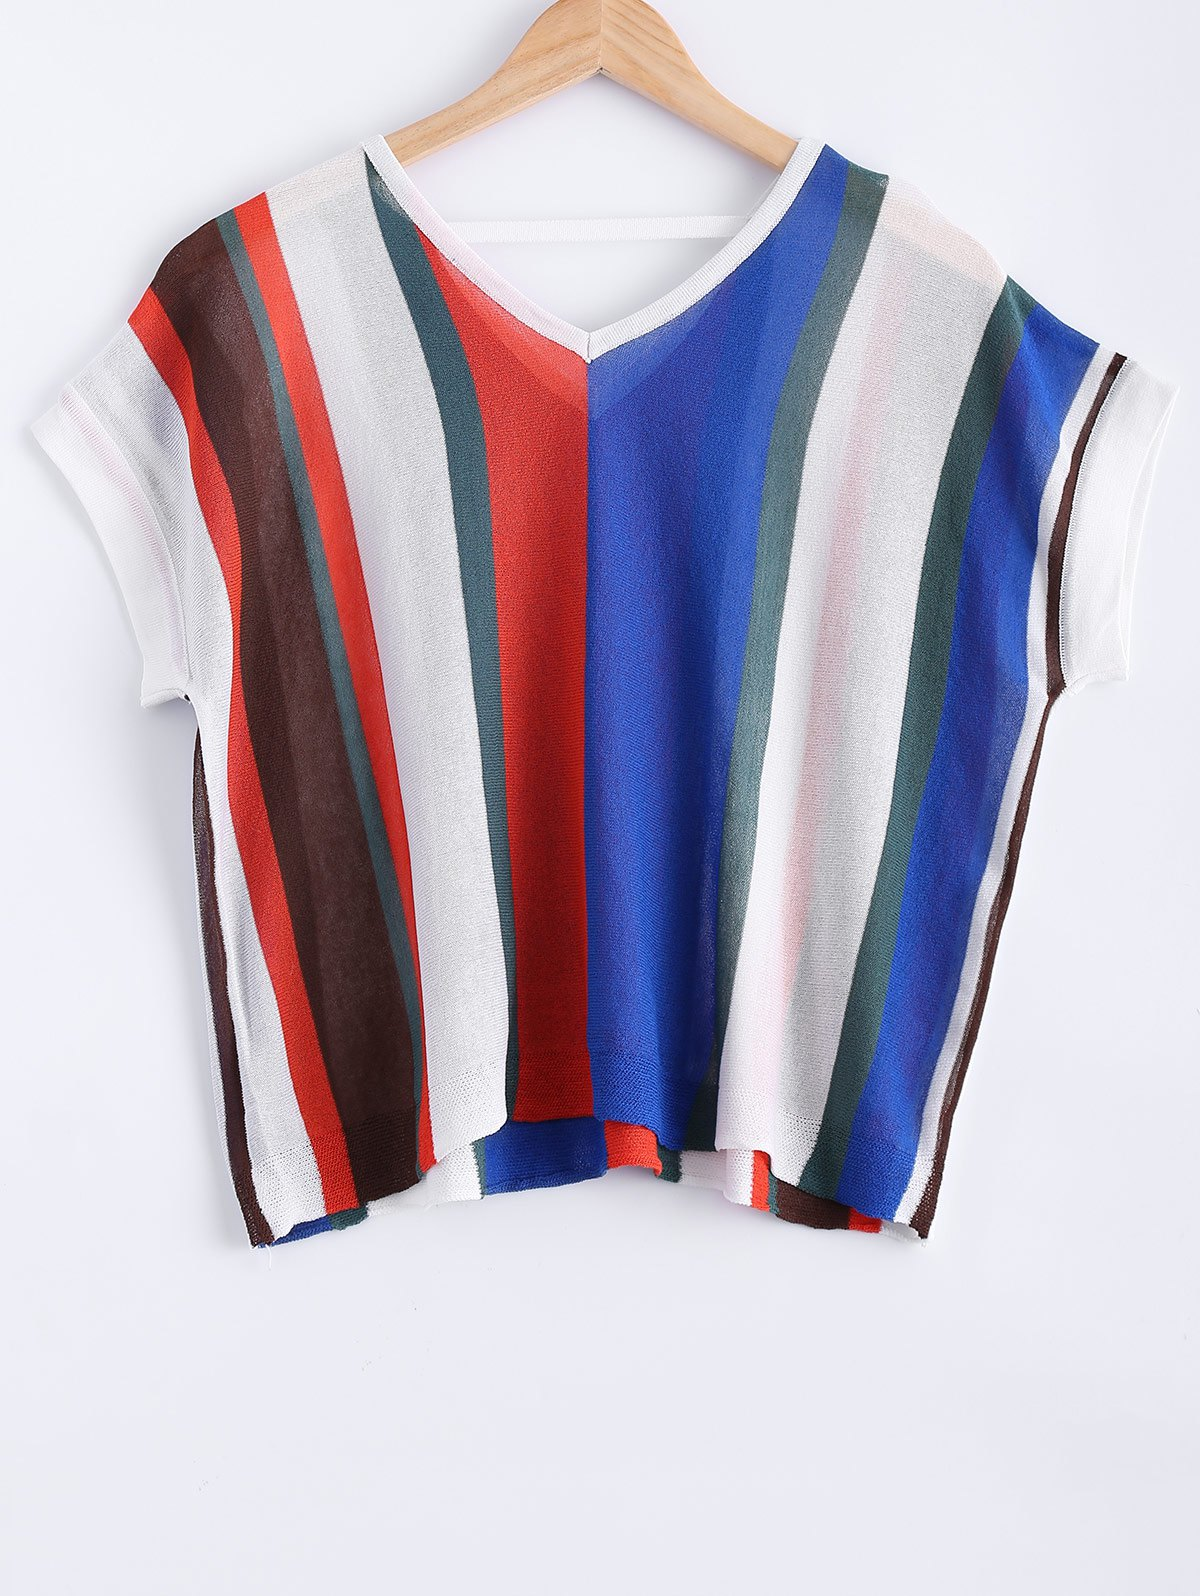 Loose-Fitting Women's V-Neck Colorful Striped Short Sleeves Knitwear - COLORMIX ONE SIZE(FIT SIZE XS TO M)